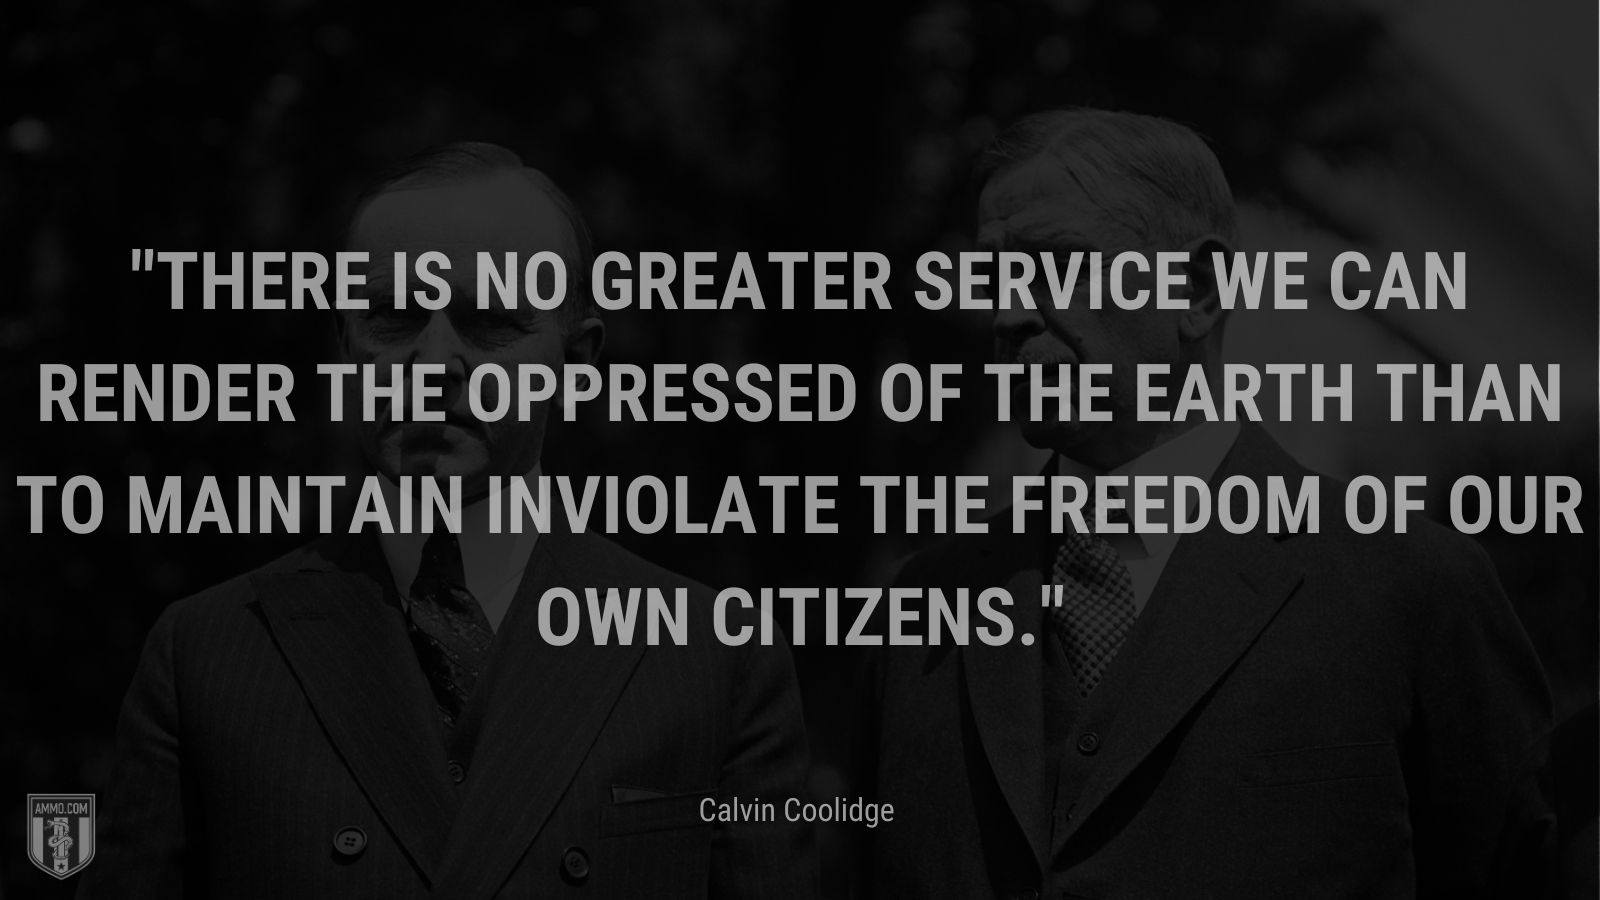 """""""There is no greater service we can render the oppressed of the earththan to maintain inviolate the freedom of our own citizens."""" - Calvin Coolidge"""